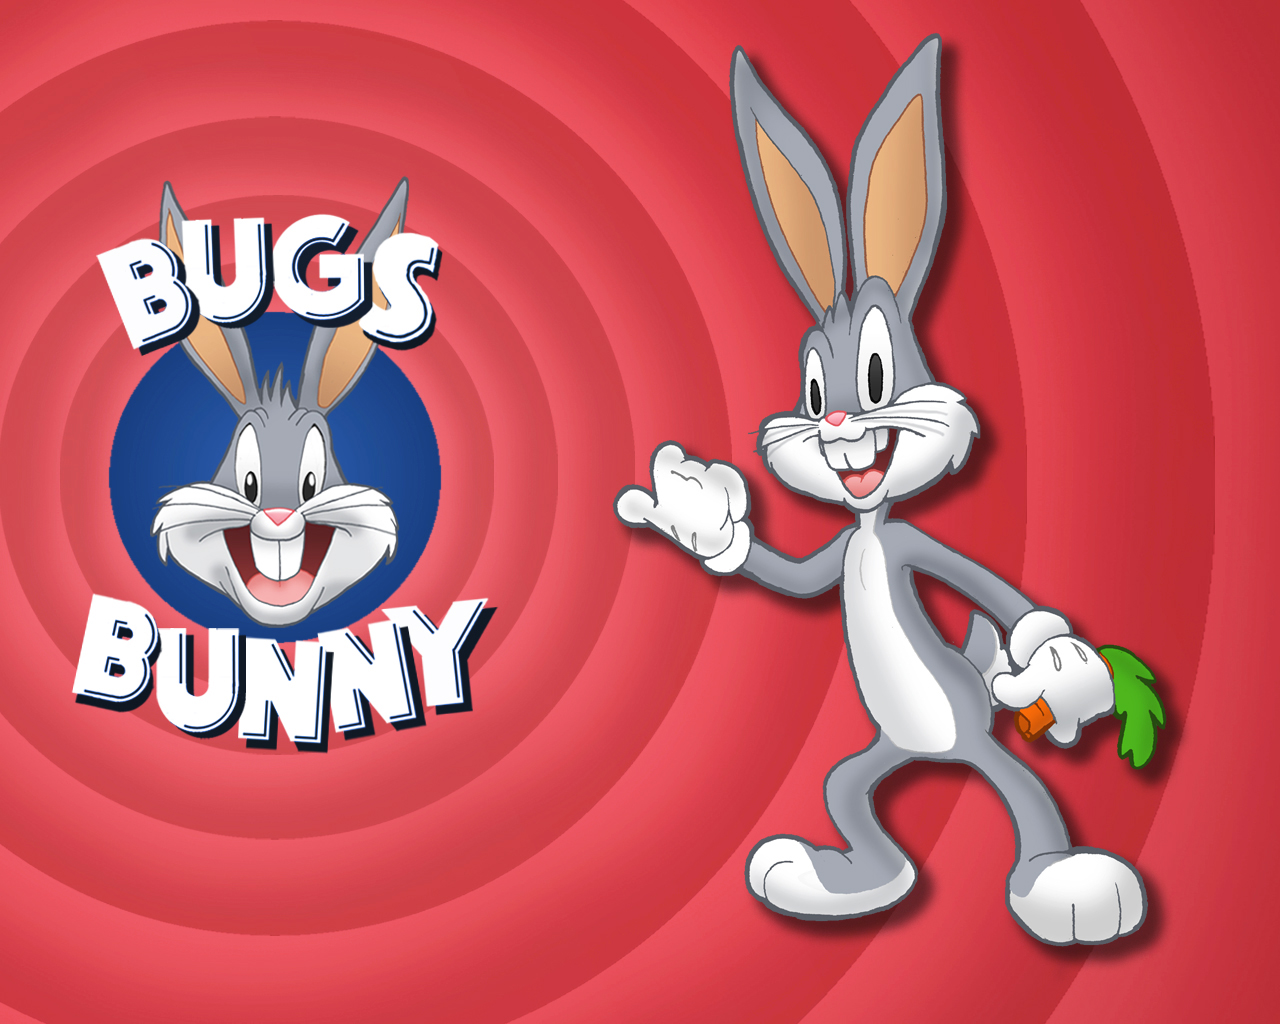 bugs bunny wallpaper Wallpapers  Free bugs bunny wallpaper 1280x1024